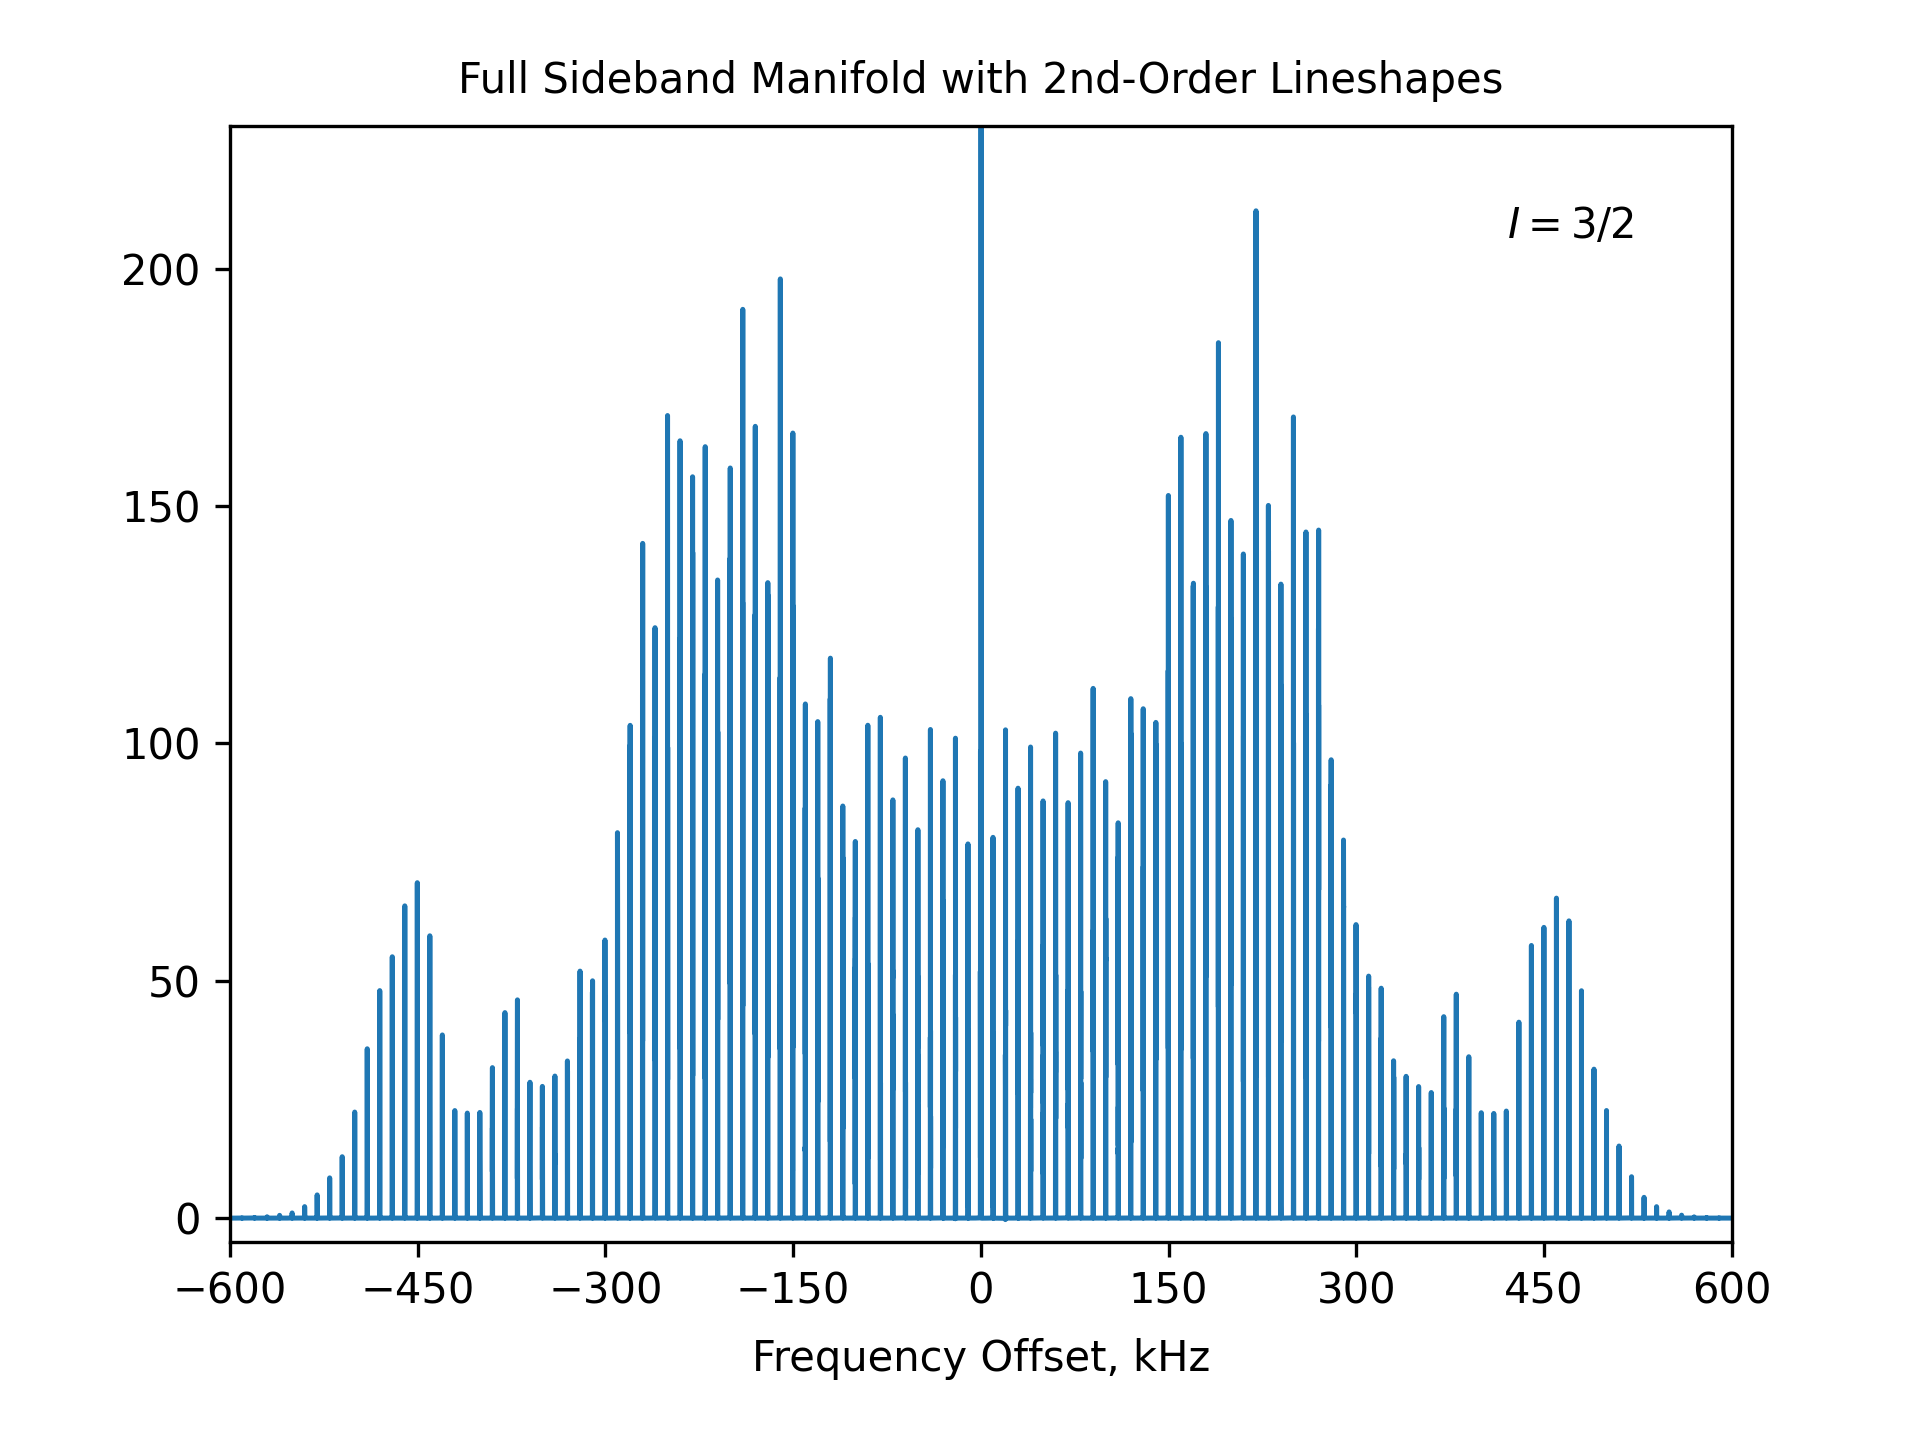 Full Sideband Manifold with 2nd-Order Lineshapes